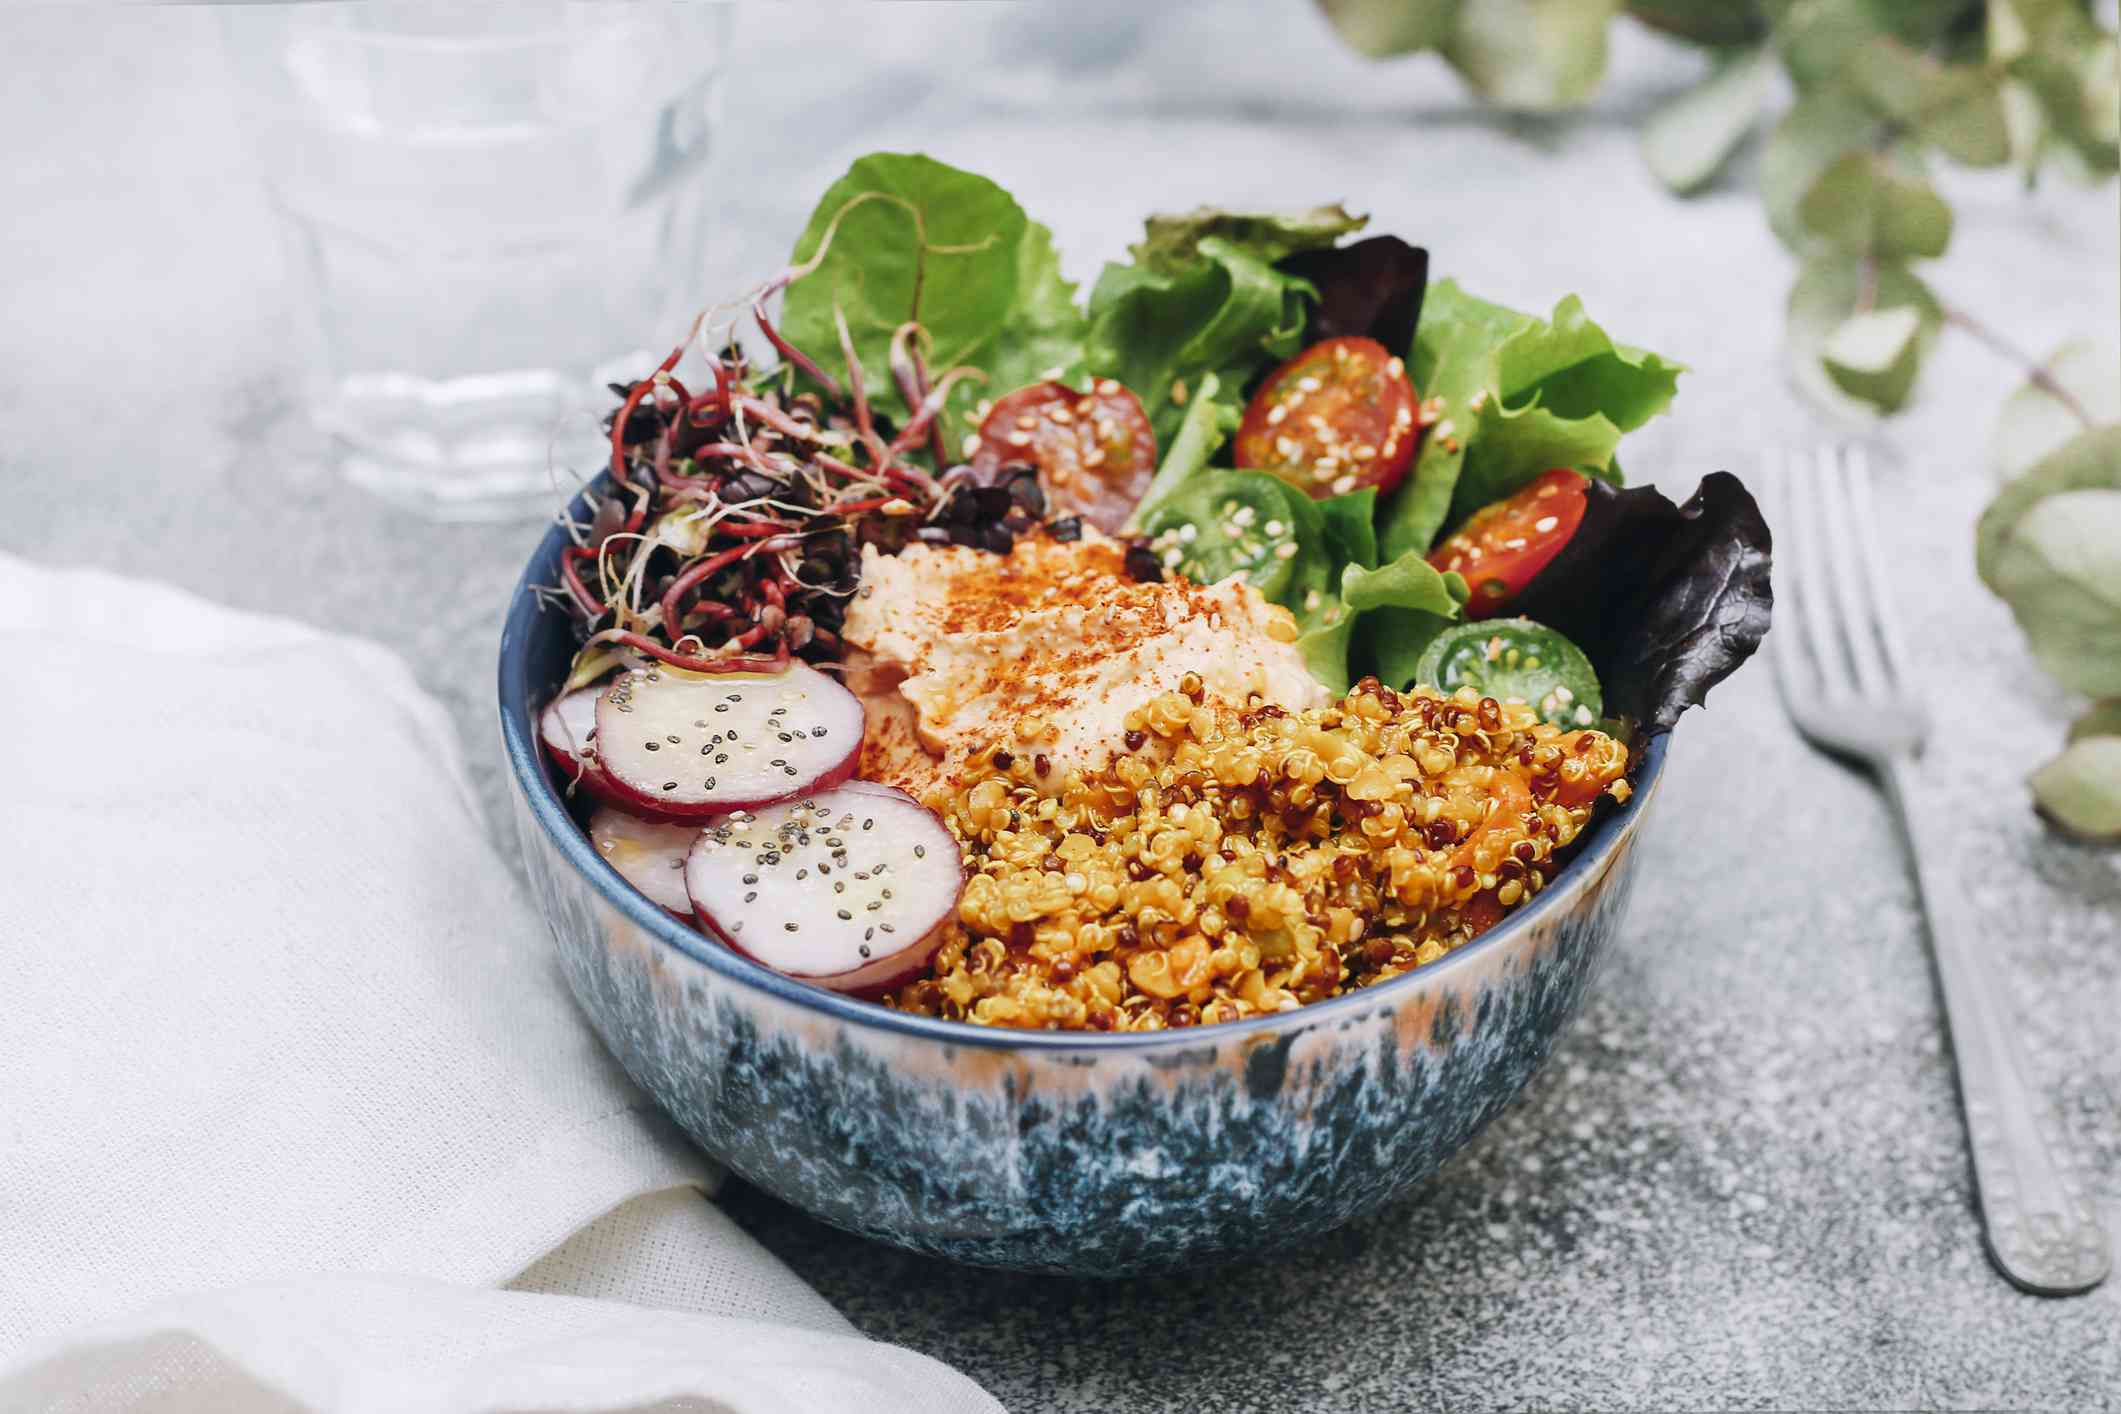 Bowl with quinoa, lettuce, radish, tomatoes and hummus. Sitting on table beside a fork.